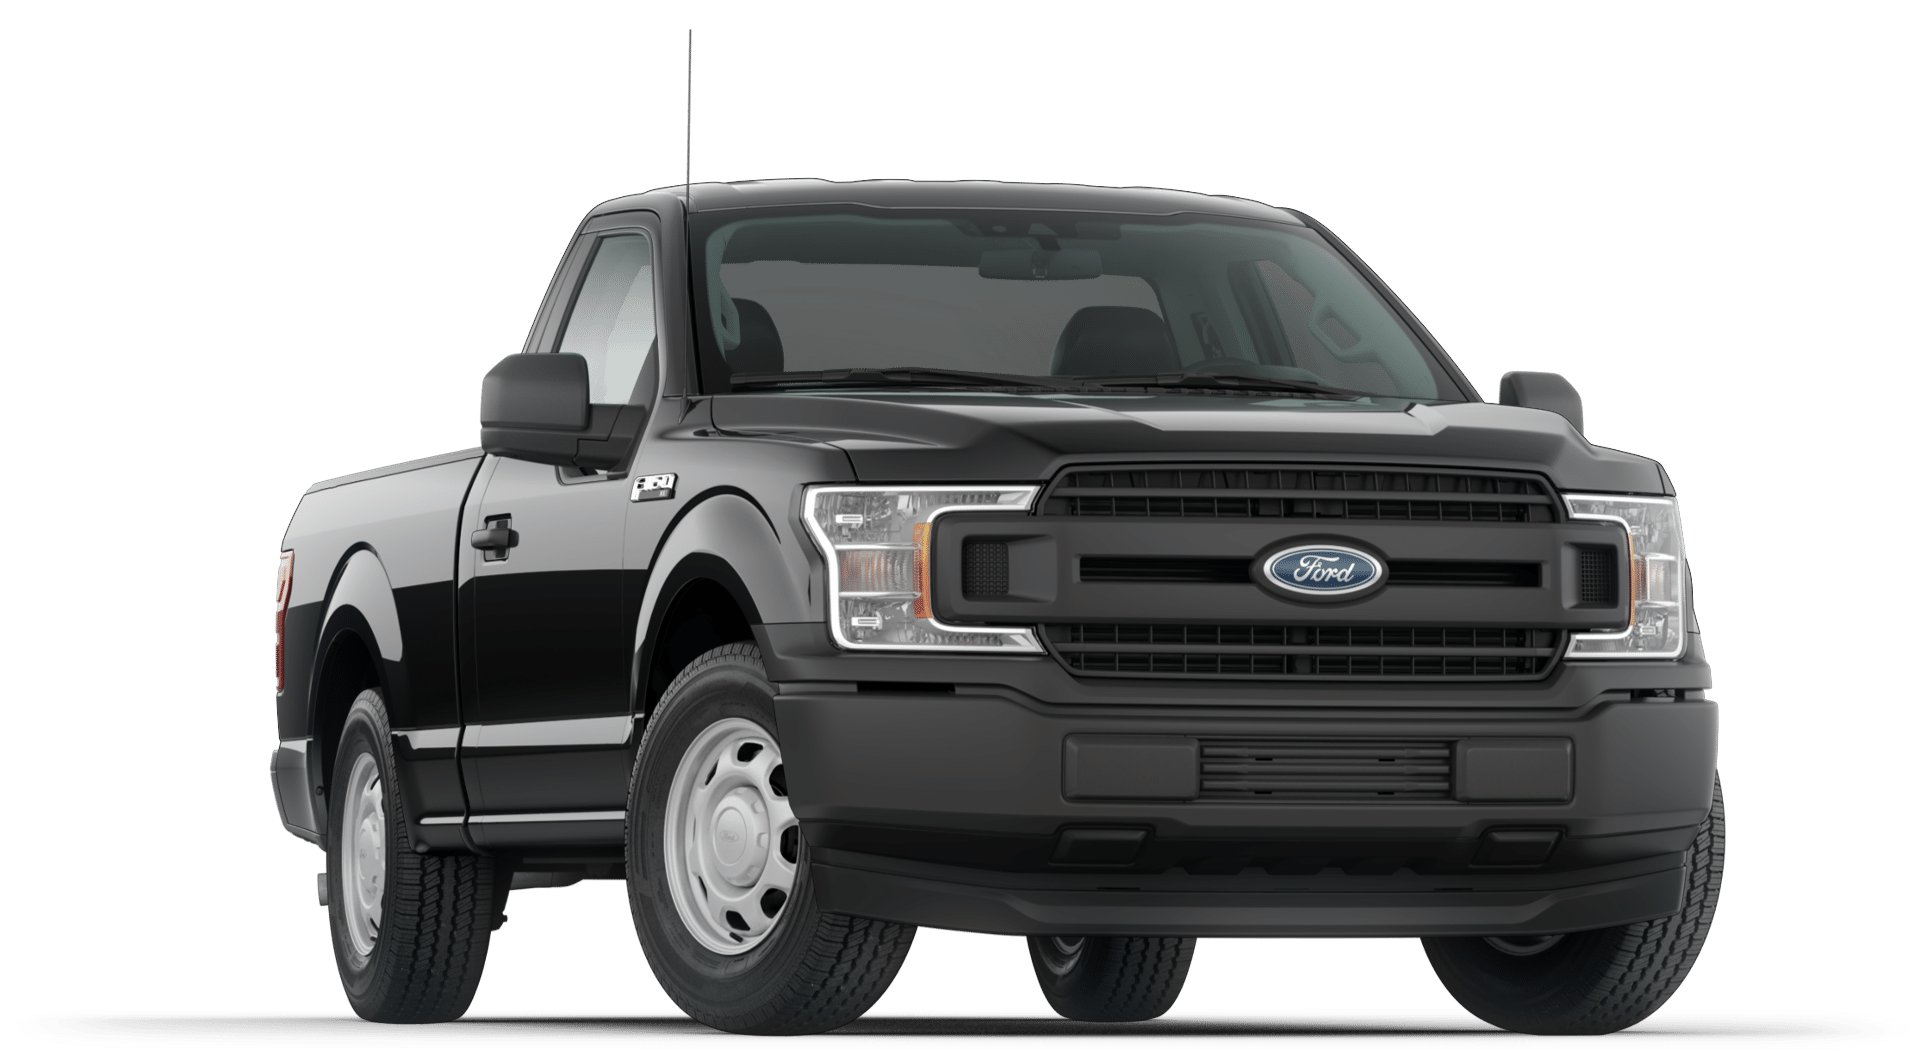 2020 Ford F150 XL Trim Regular Cab in Agate Black Exterior